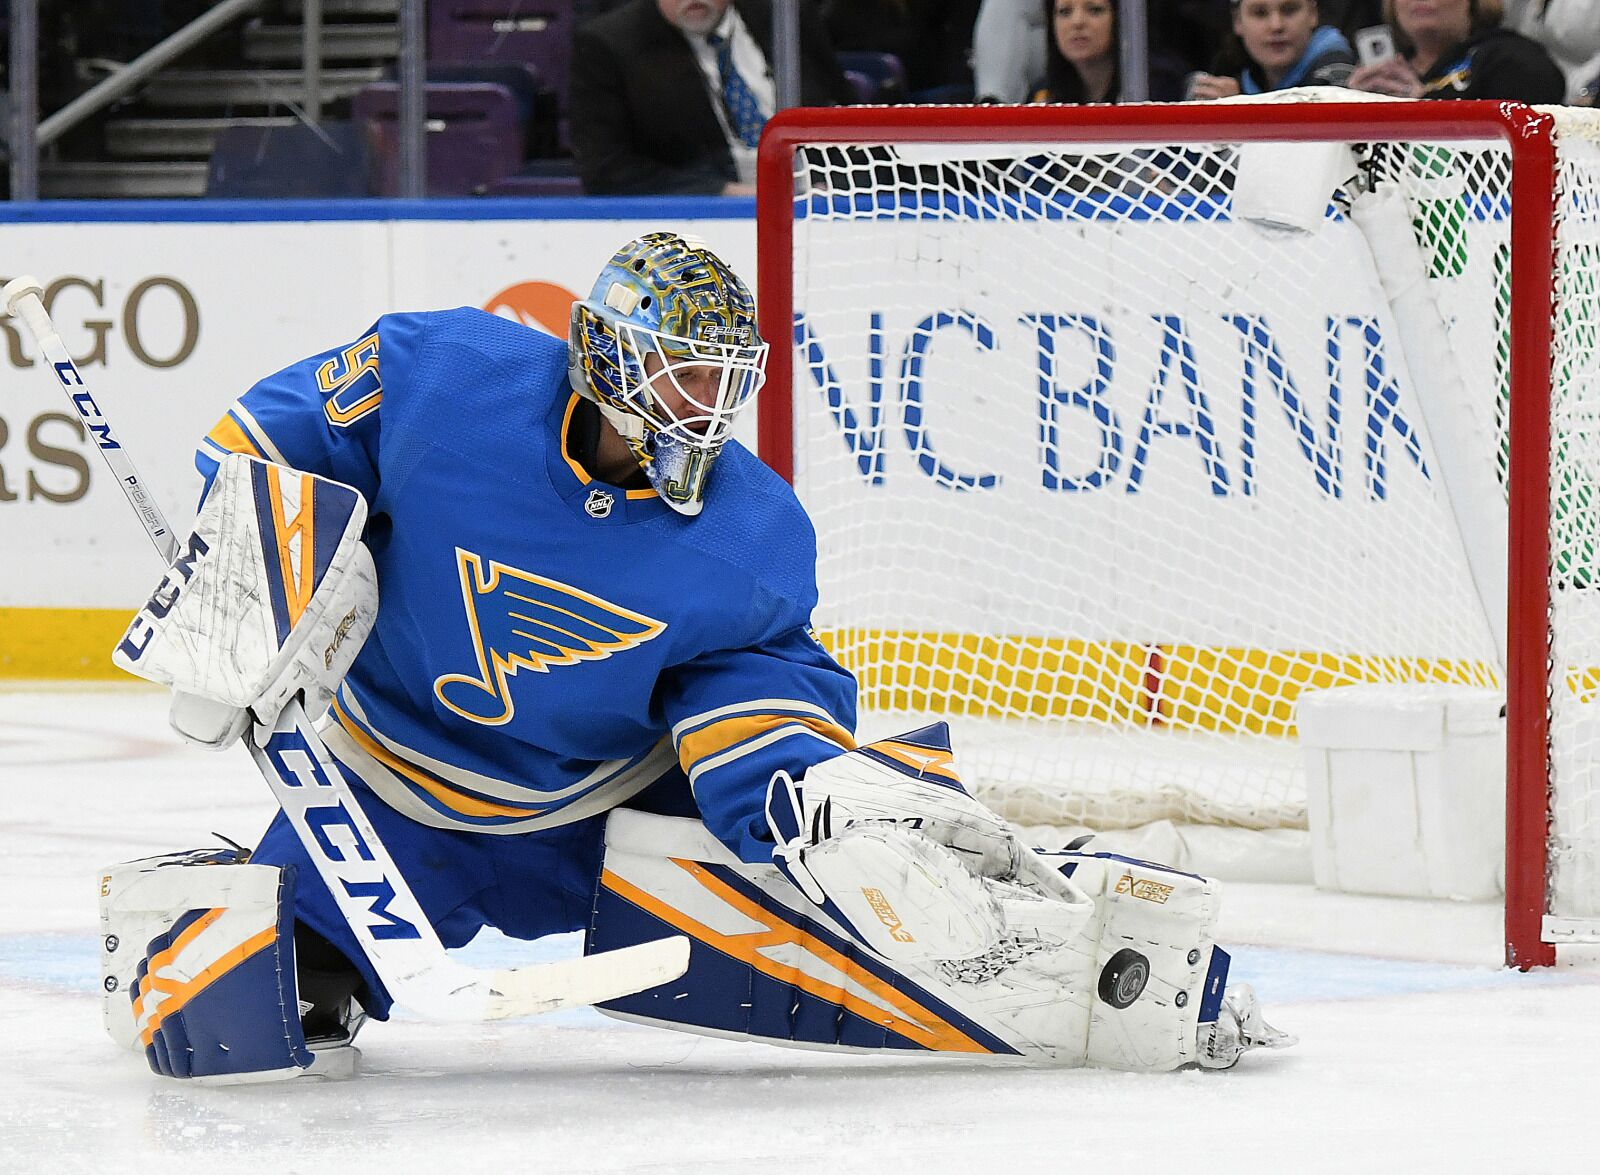 St. Louis Blues: Binnington's Performance Opens Trade Possibilities